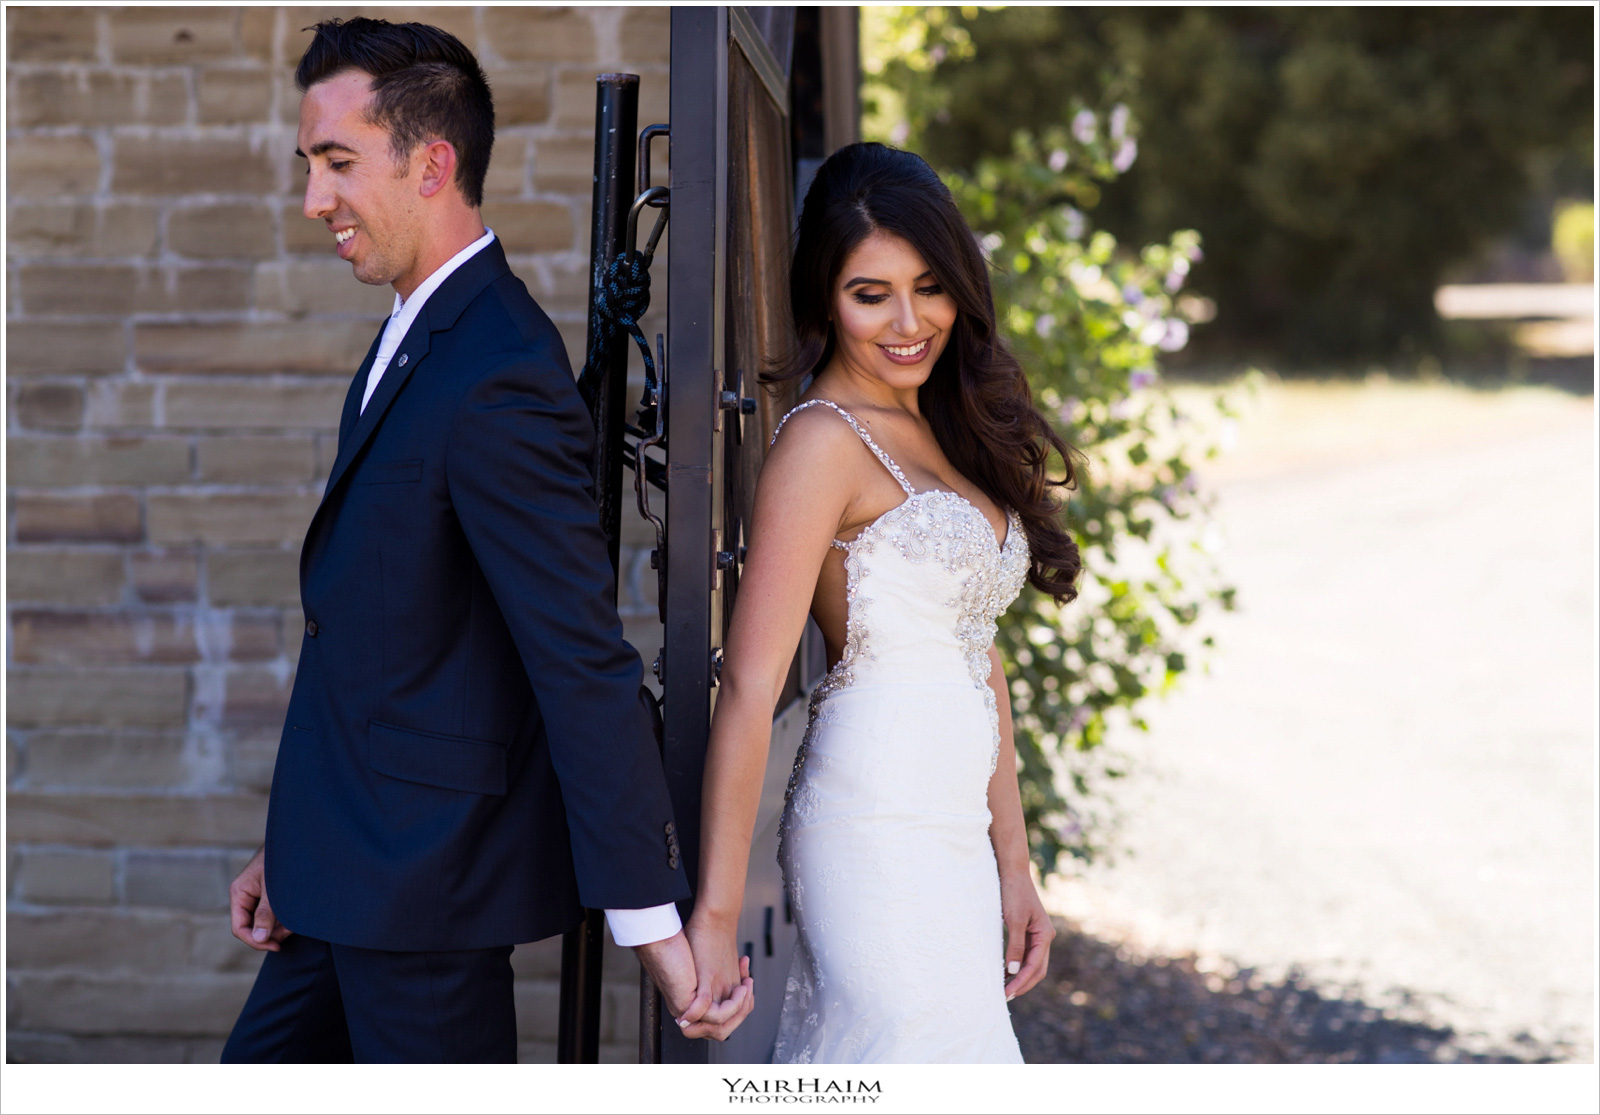 Destination-wedding-photographer-Yair-Haim-15